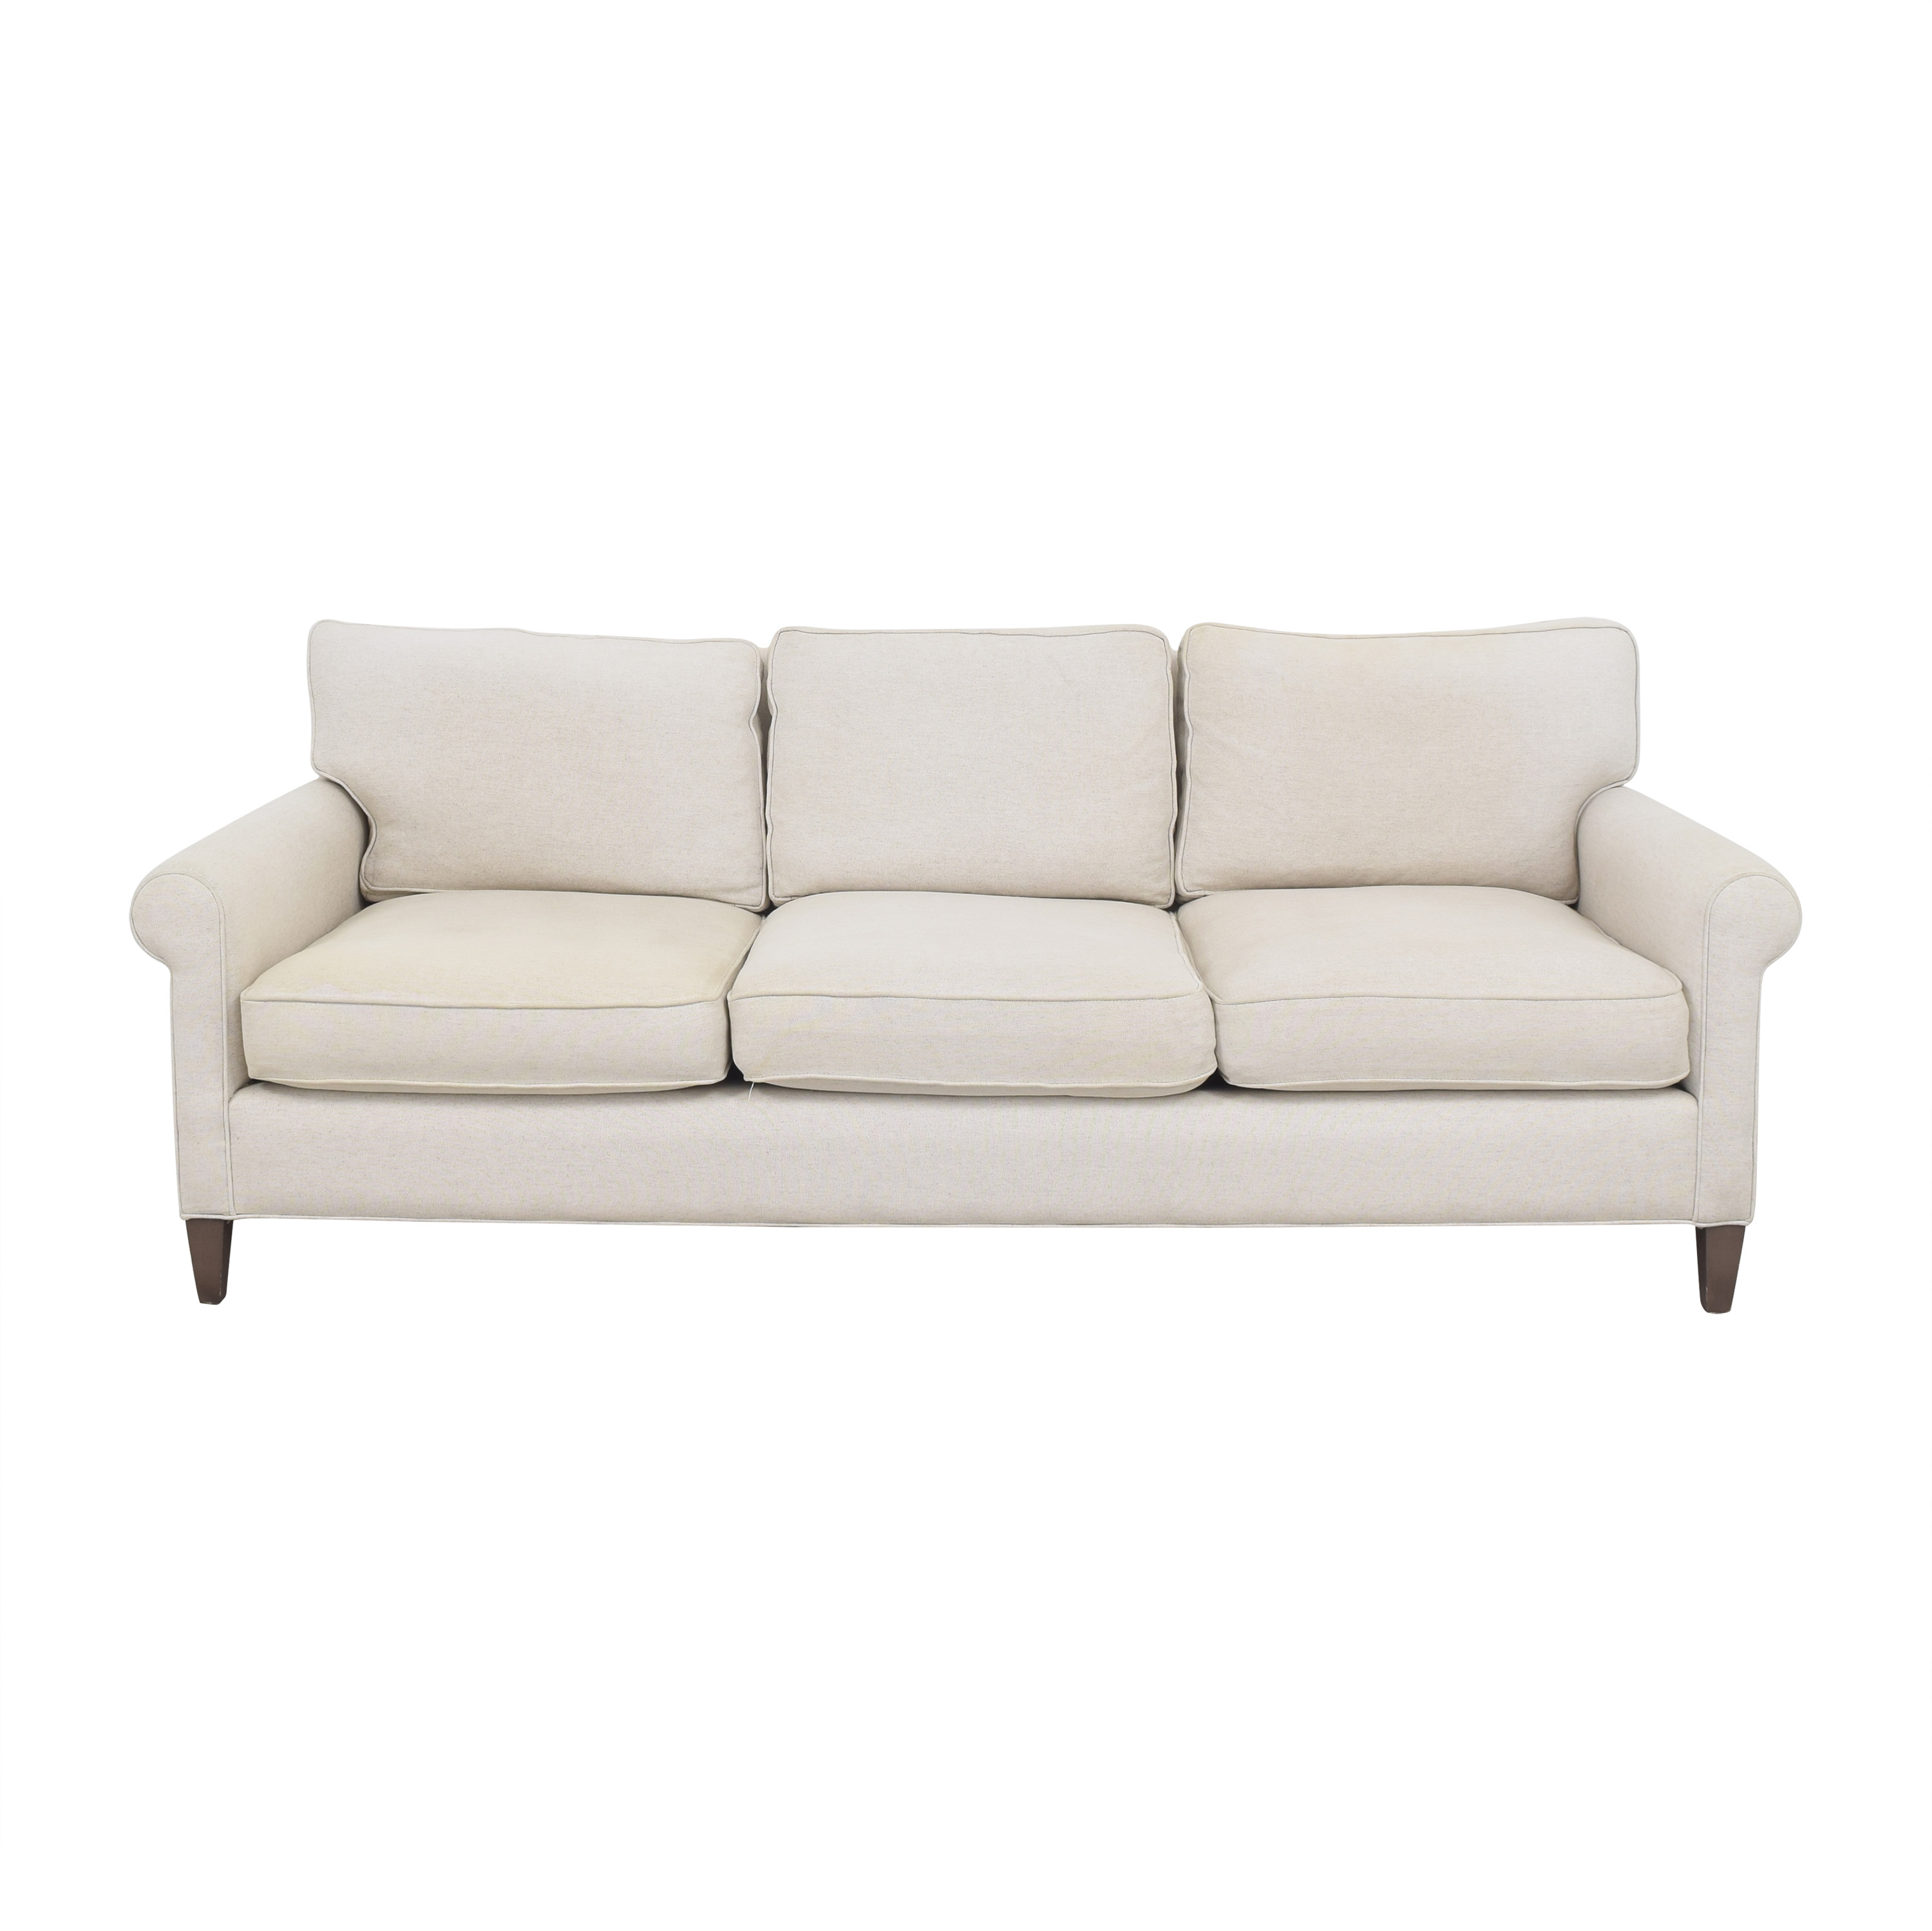 Crate & Barrel Crate & Barrel Montclair Three Cushion Sofa nyc